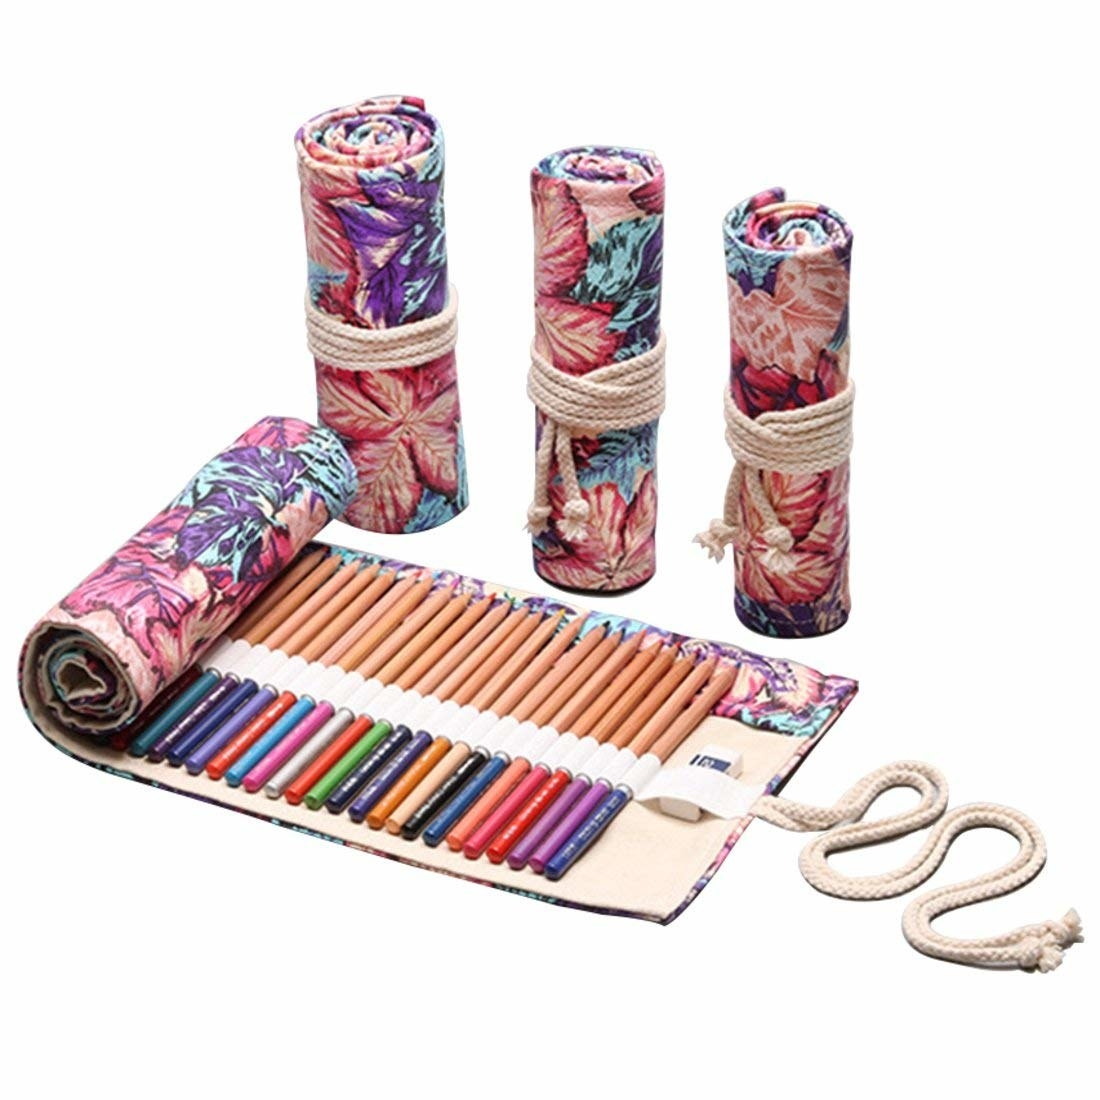 Image showing the pencil case both opened up to show the pencils inside and rolled up with rope tying it securely.